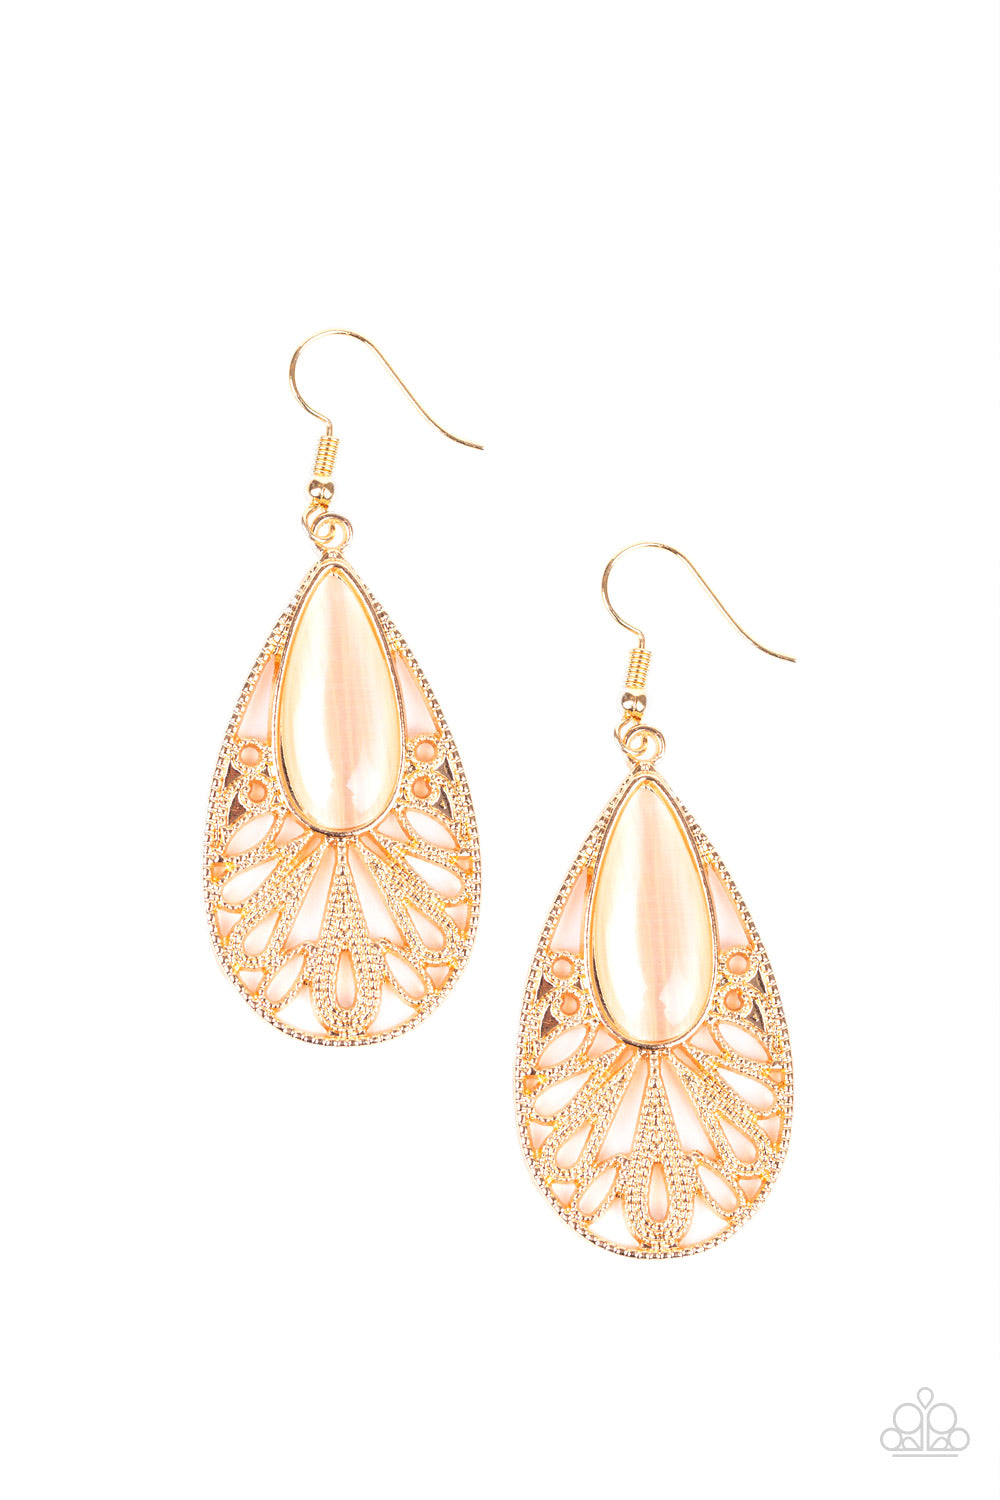 Glowing Tranquility - Gold - Earrings